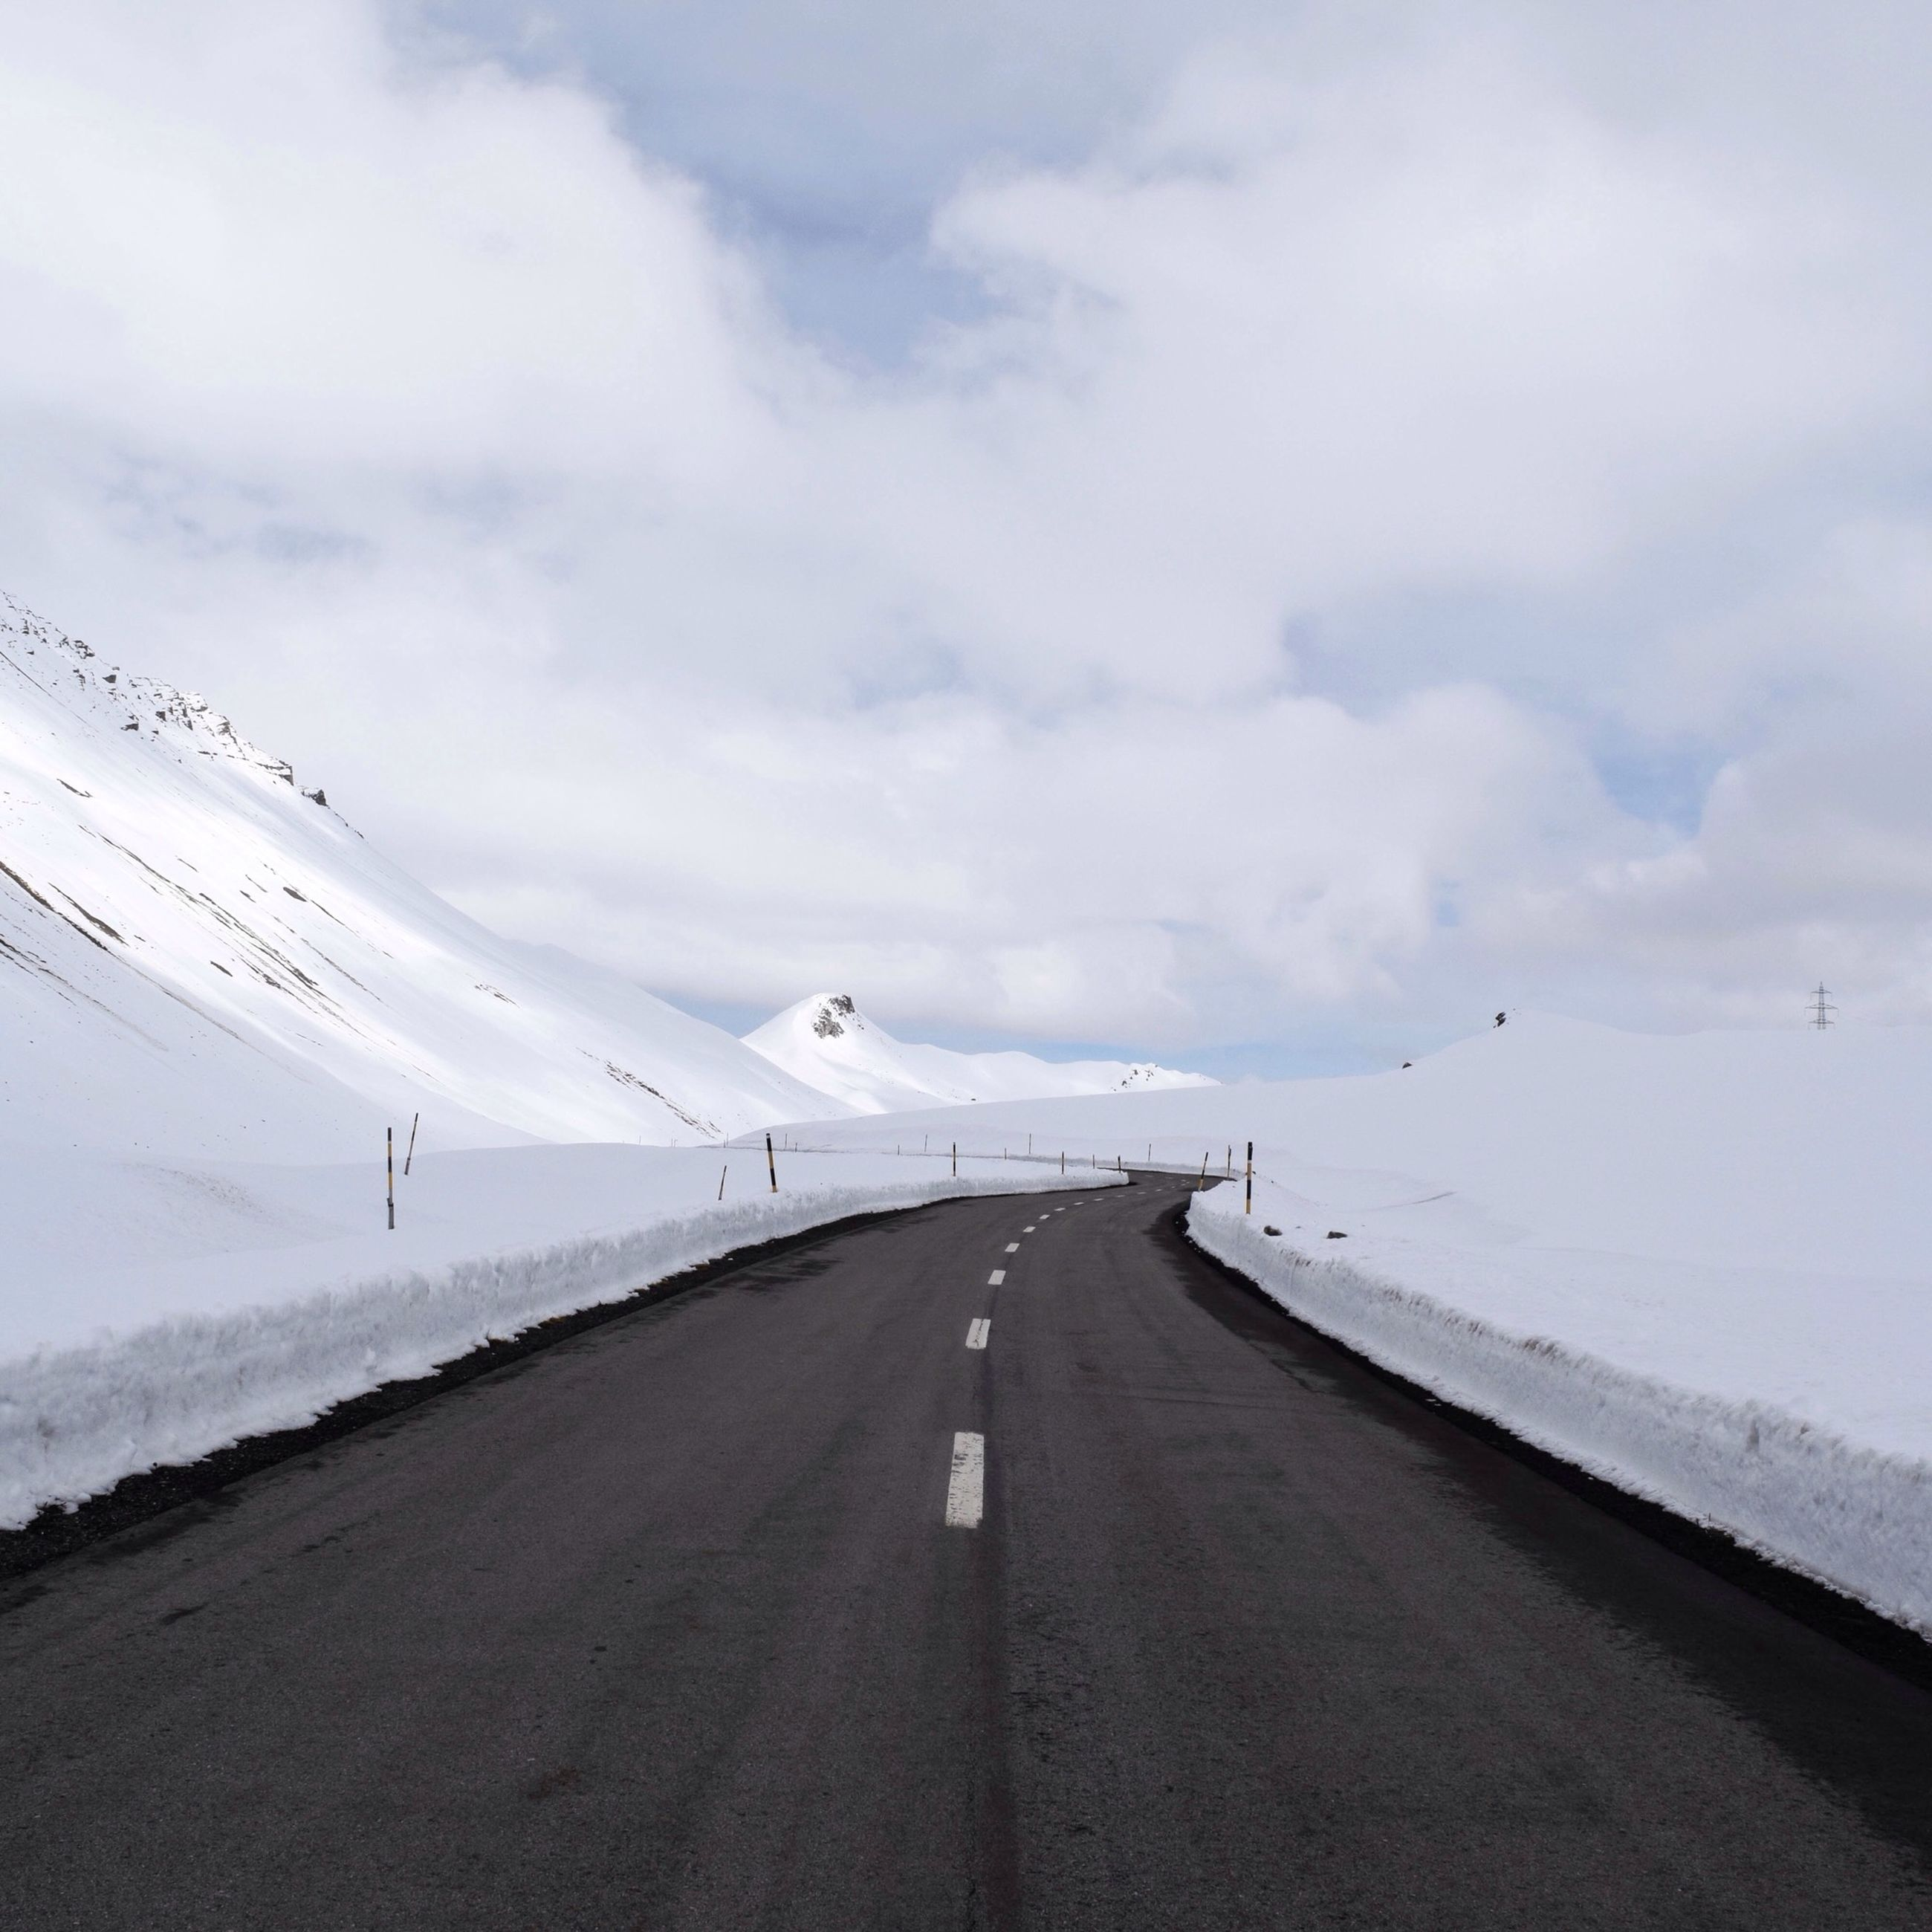 the way forward, flying, transportation, sky, road, diminishing perspective, vanishing point, cloud - sky, road marking, landscape, animal themes, snow, wildlife, mountain, cloudy, nature, bird, mid-air, tranquil scene, weather